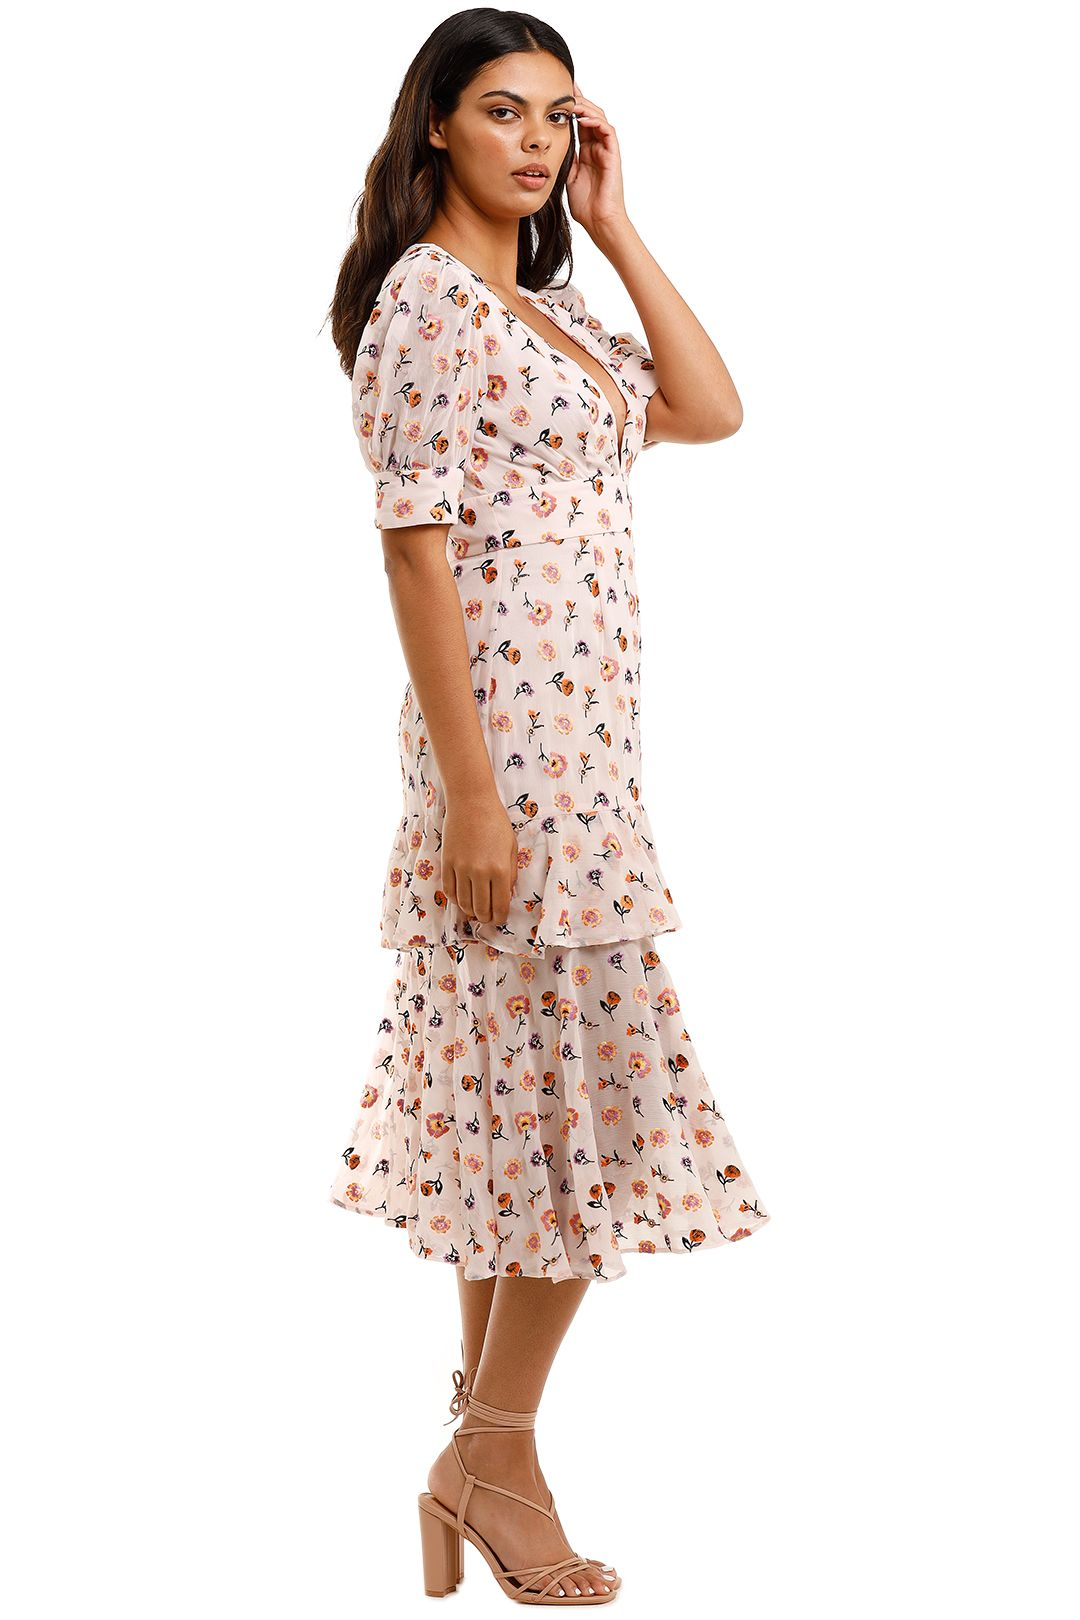 Talulah Follow You Midi Dress floral